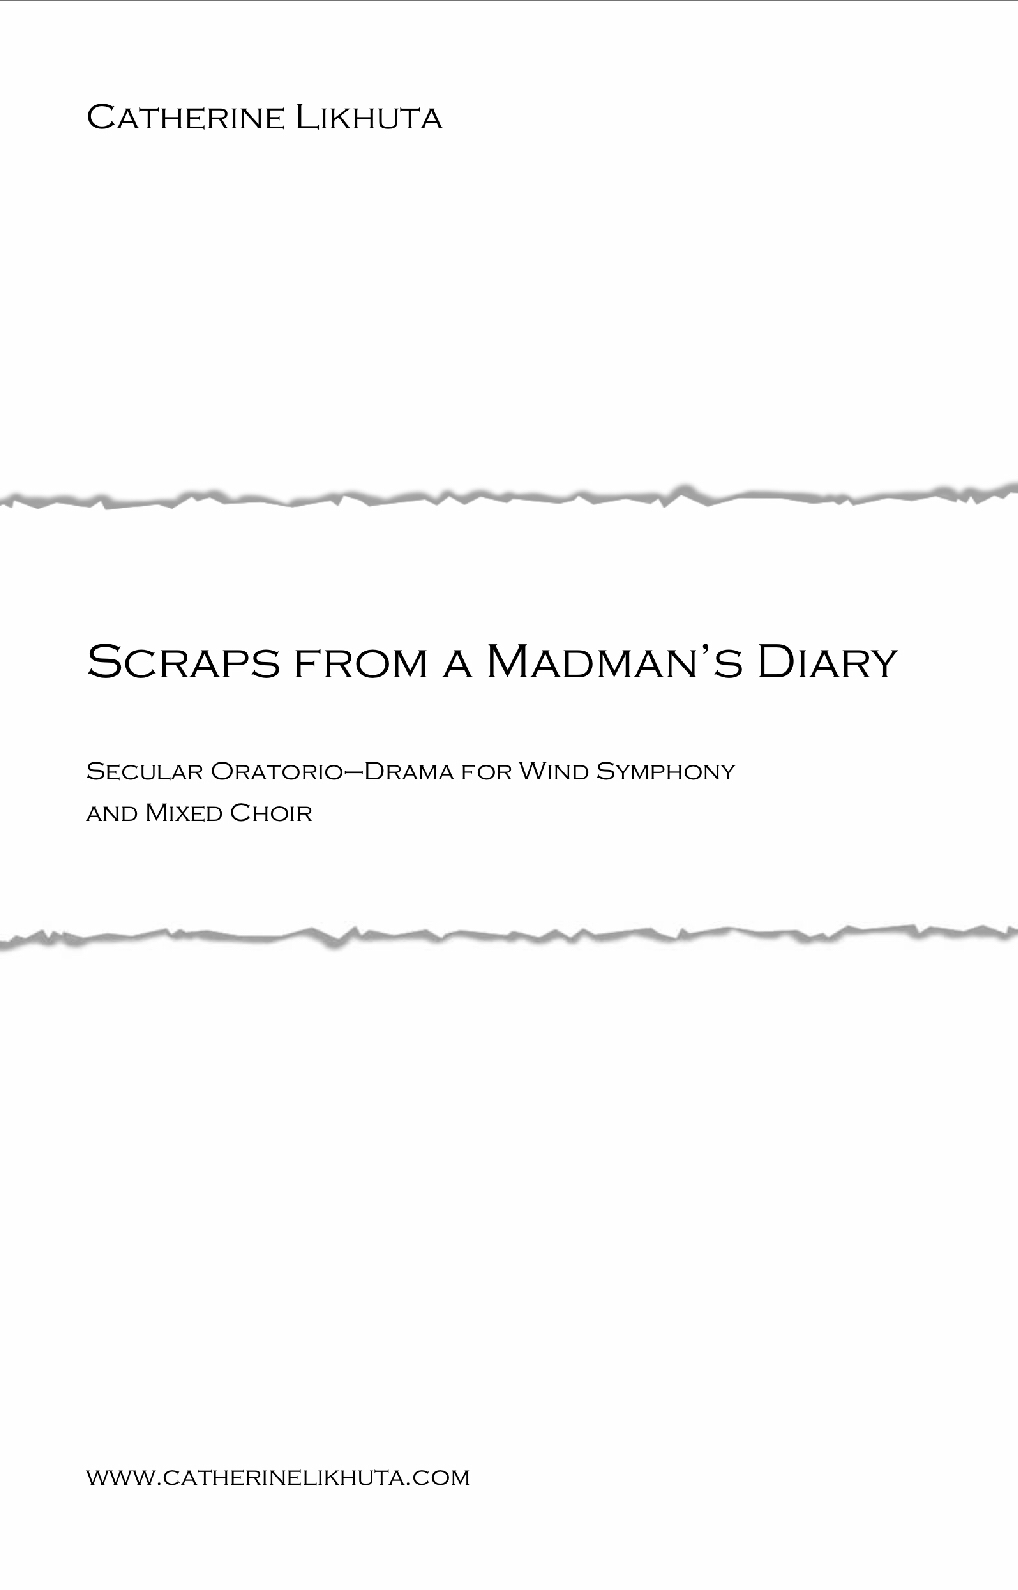 Scraps From A Madman's Diary by Catherine Likhuta